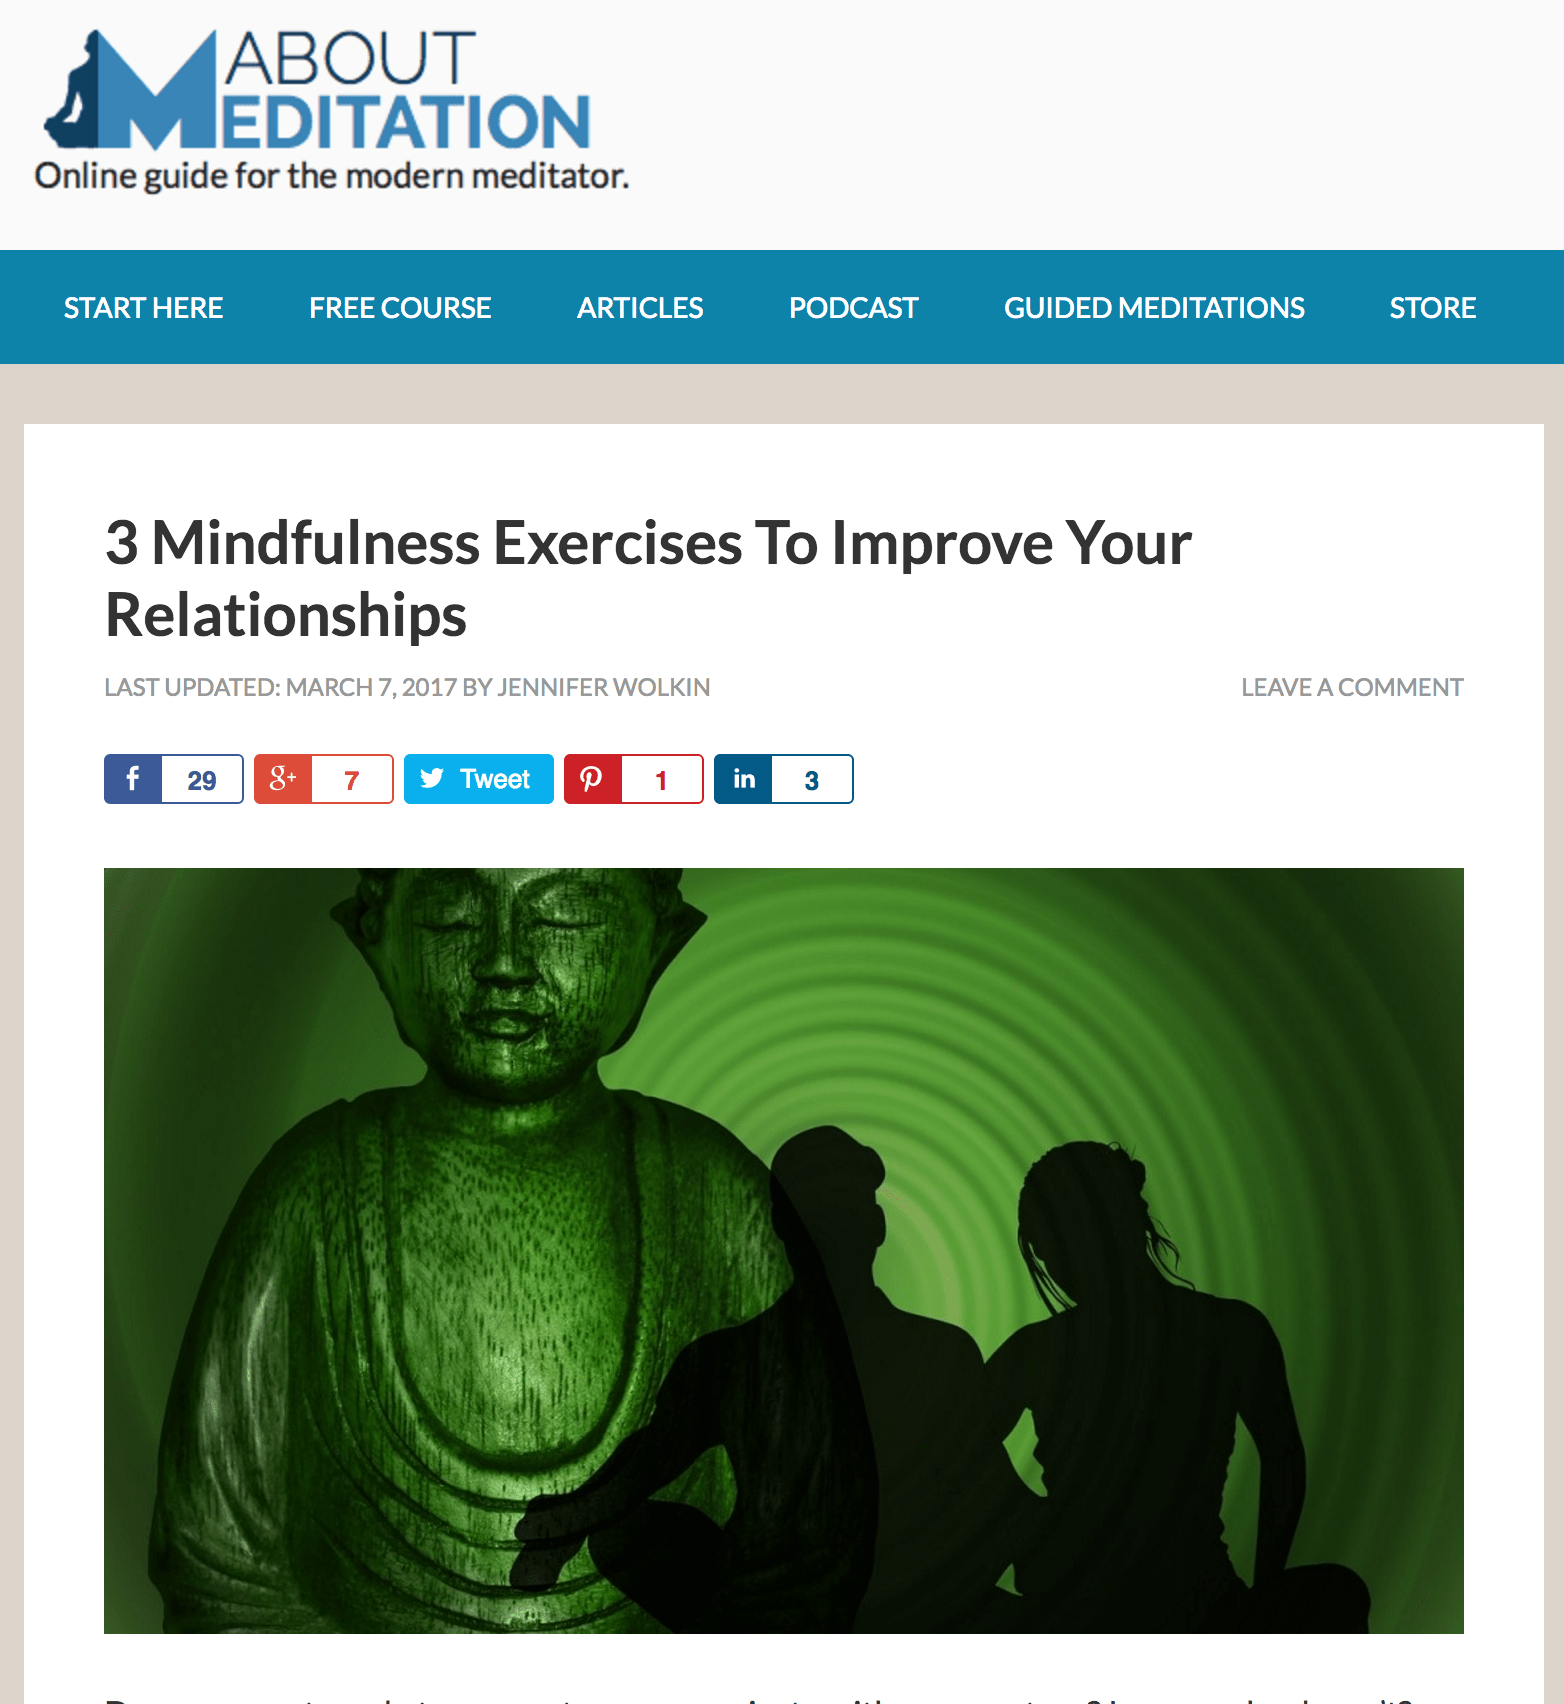 Repost: 3 Ways Mindfulness Can Improve Your Relationships